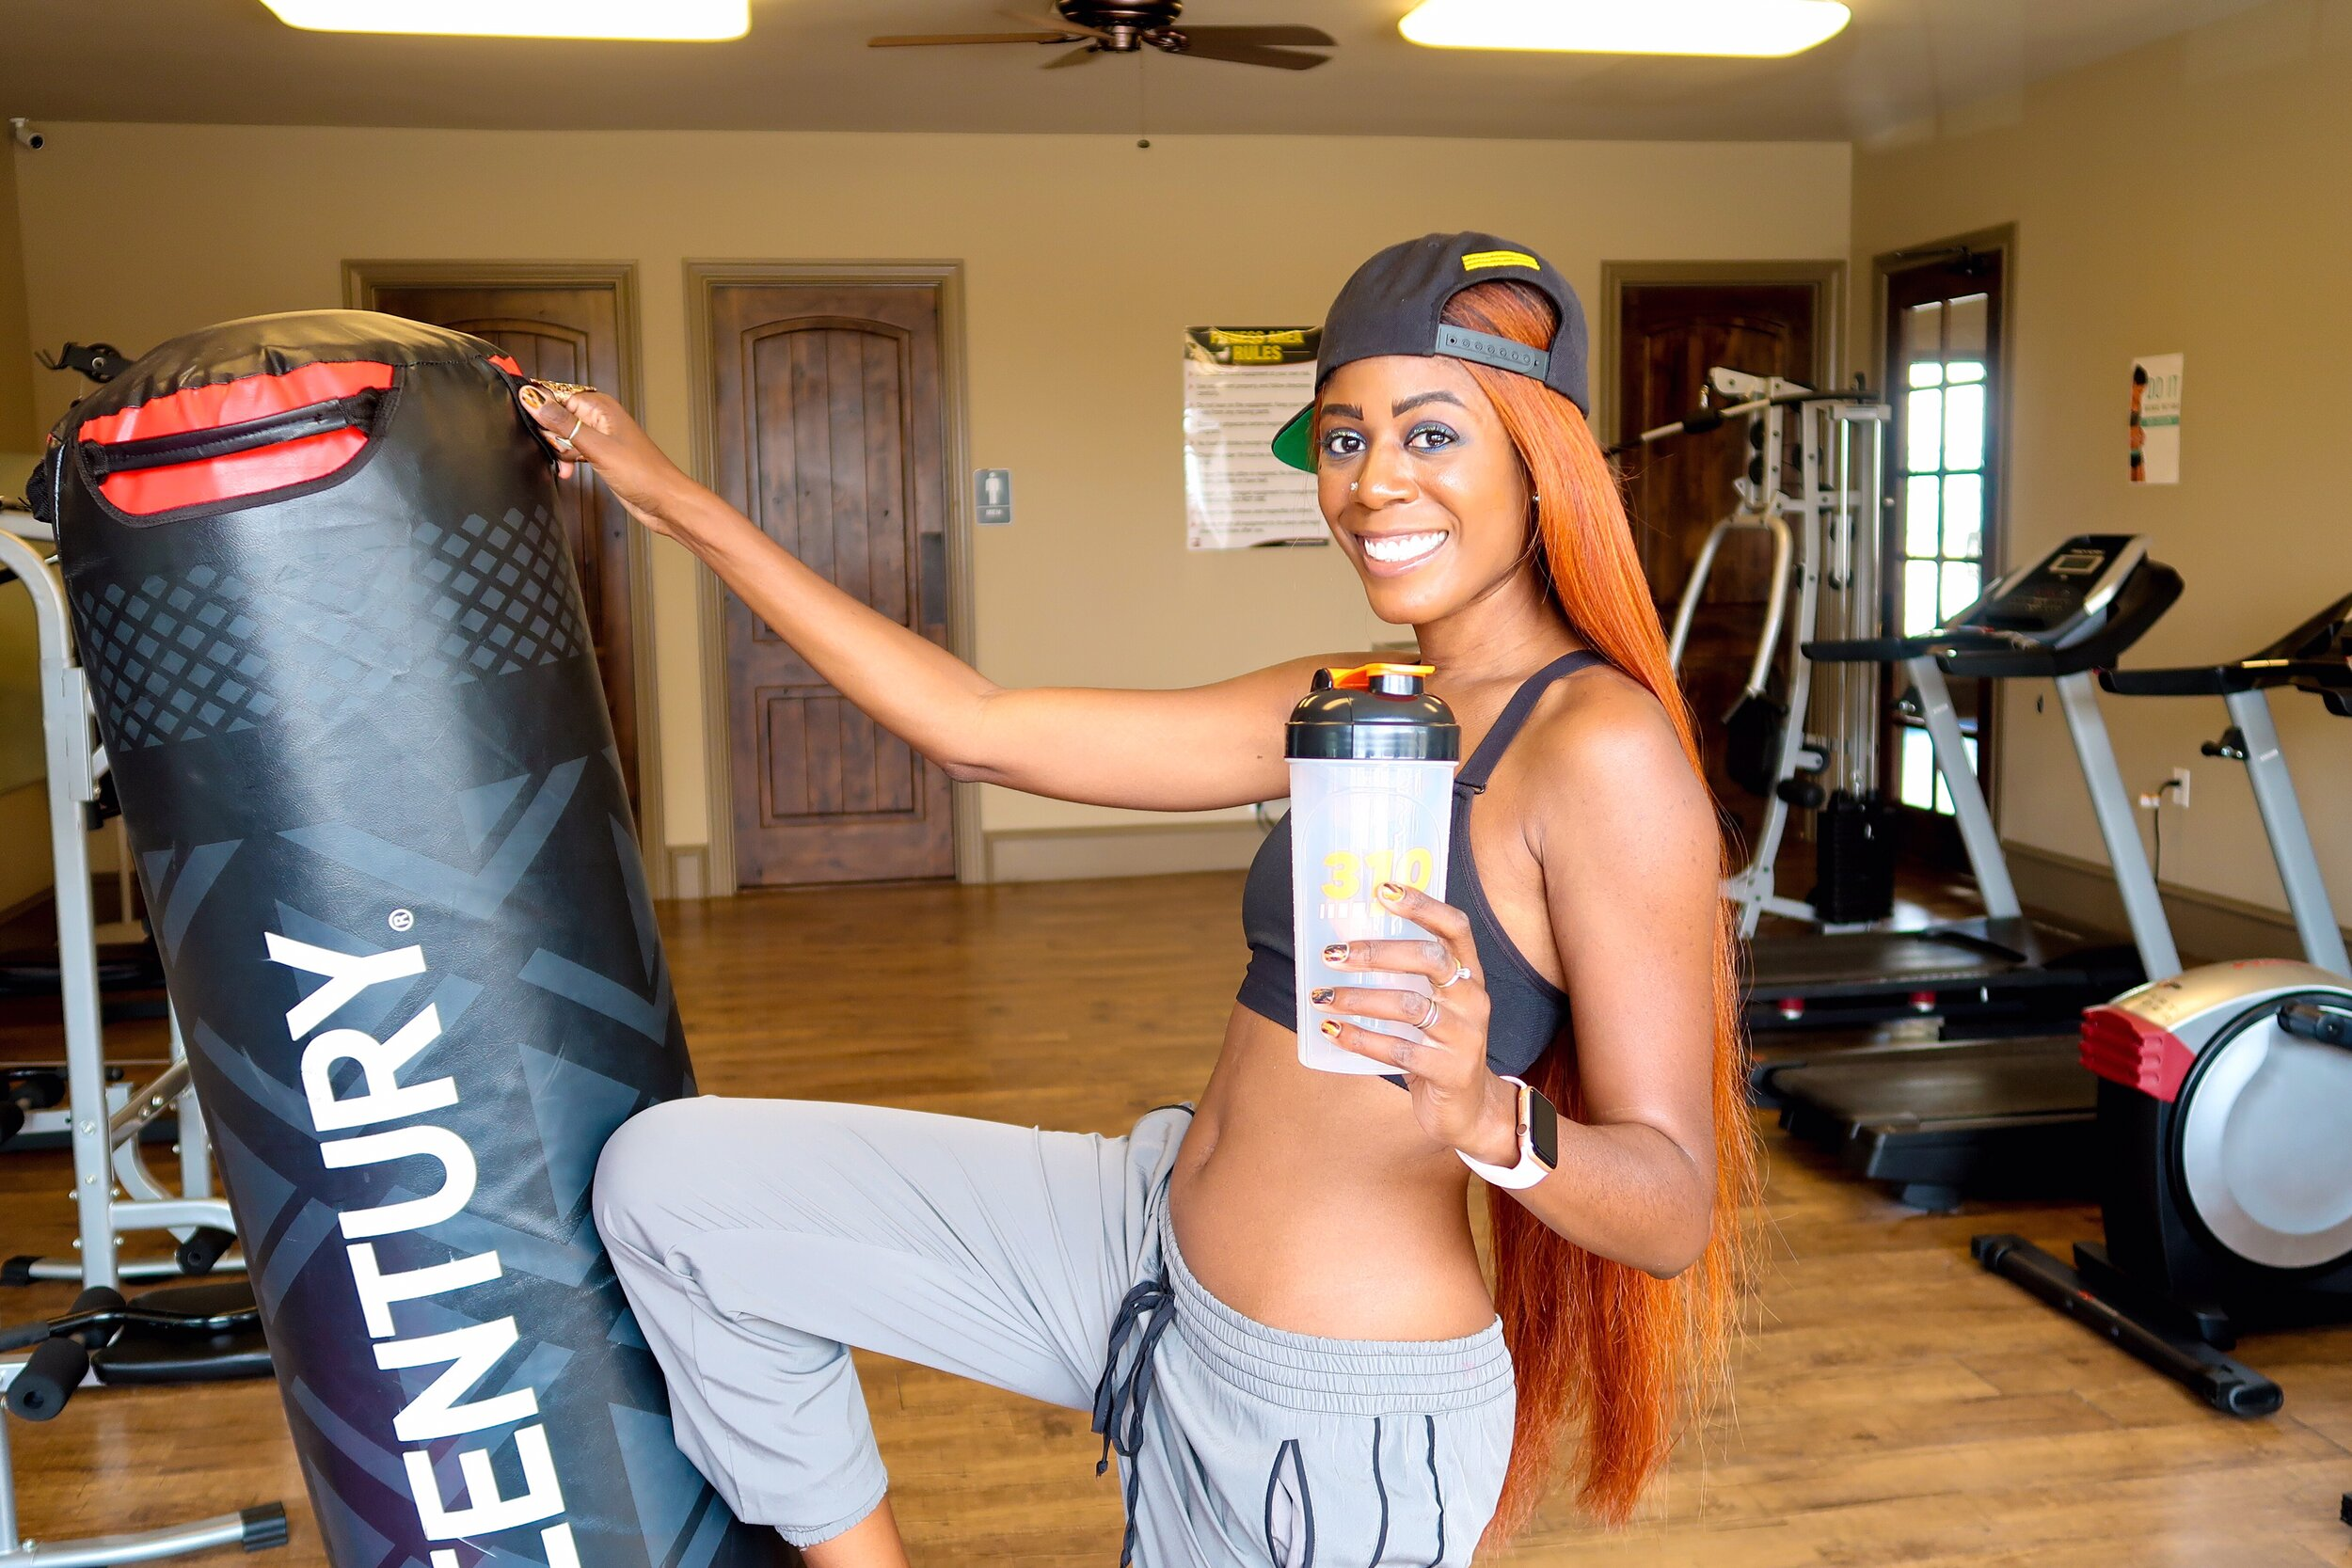 310 nutrition vs shakeology which is better.JPG